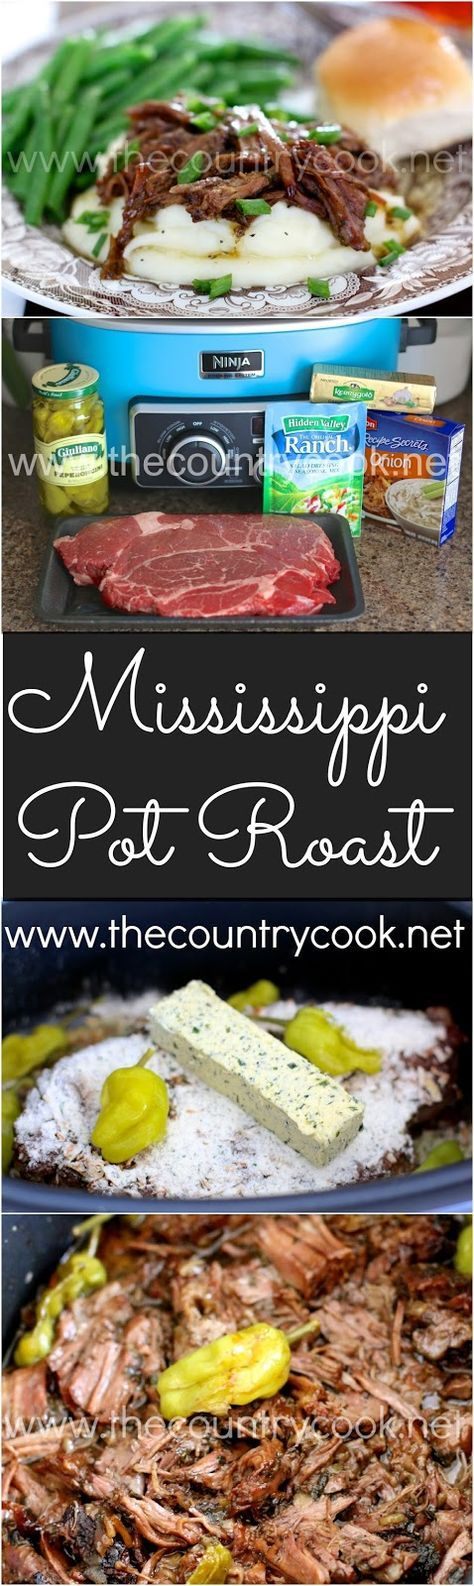 The Country Cook: Crock Pot Mississippi Pot Roast